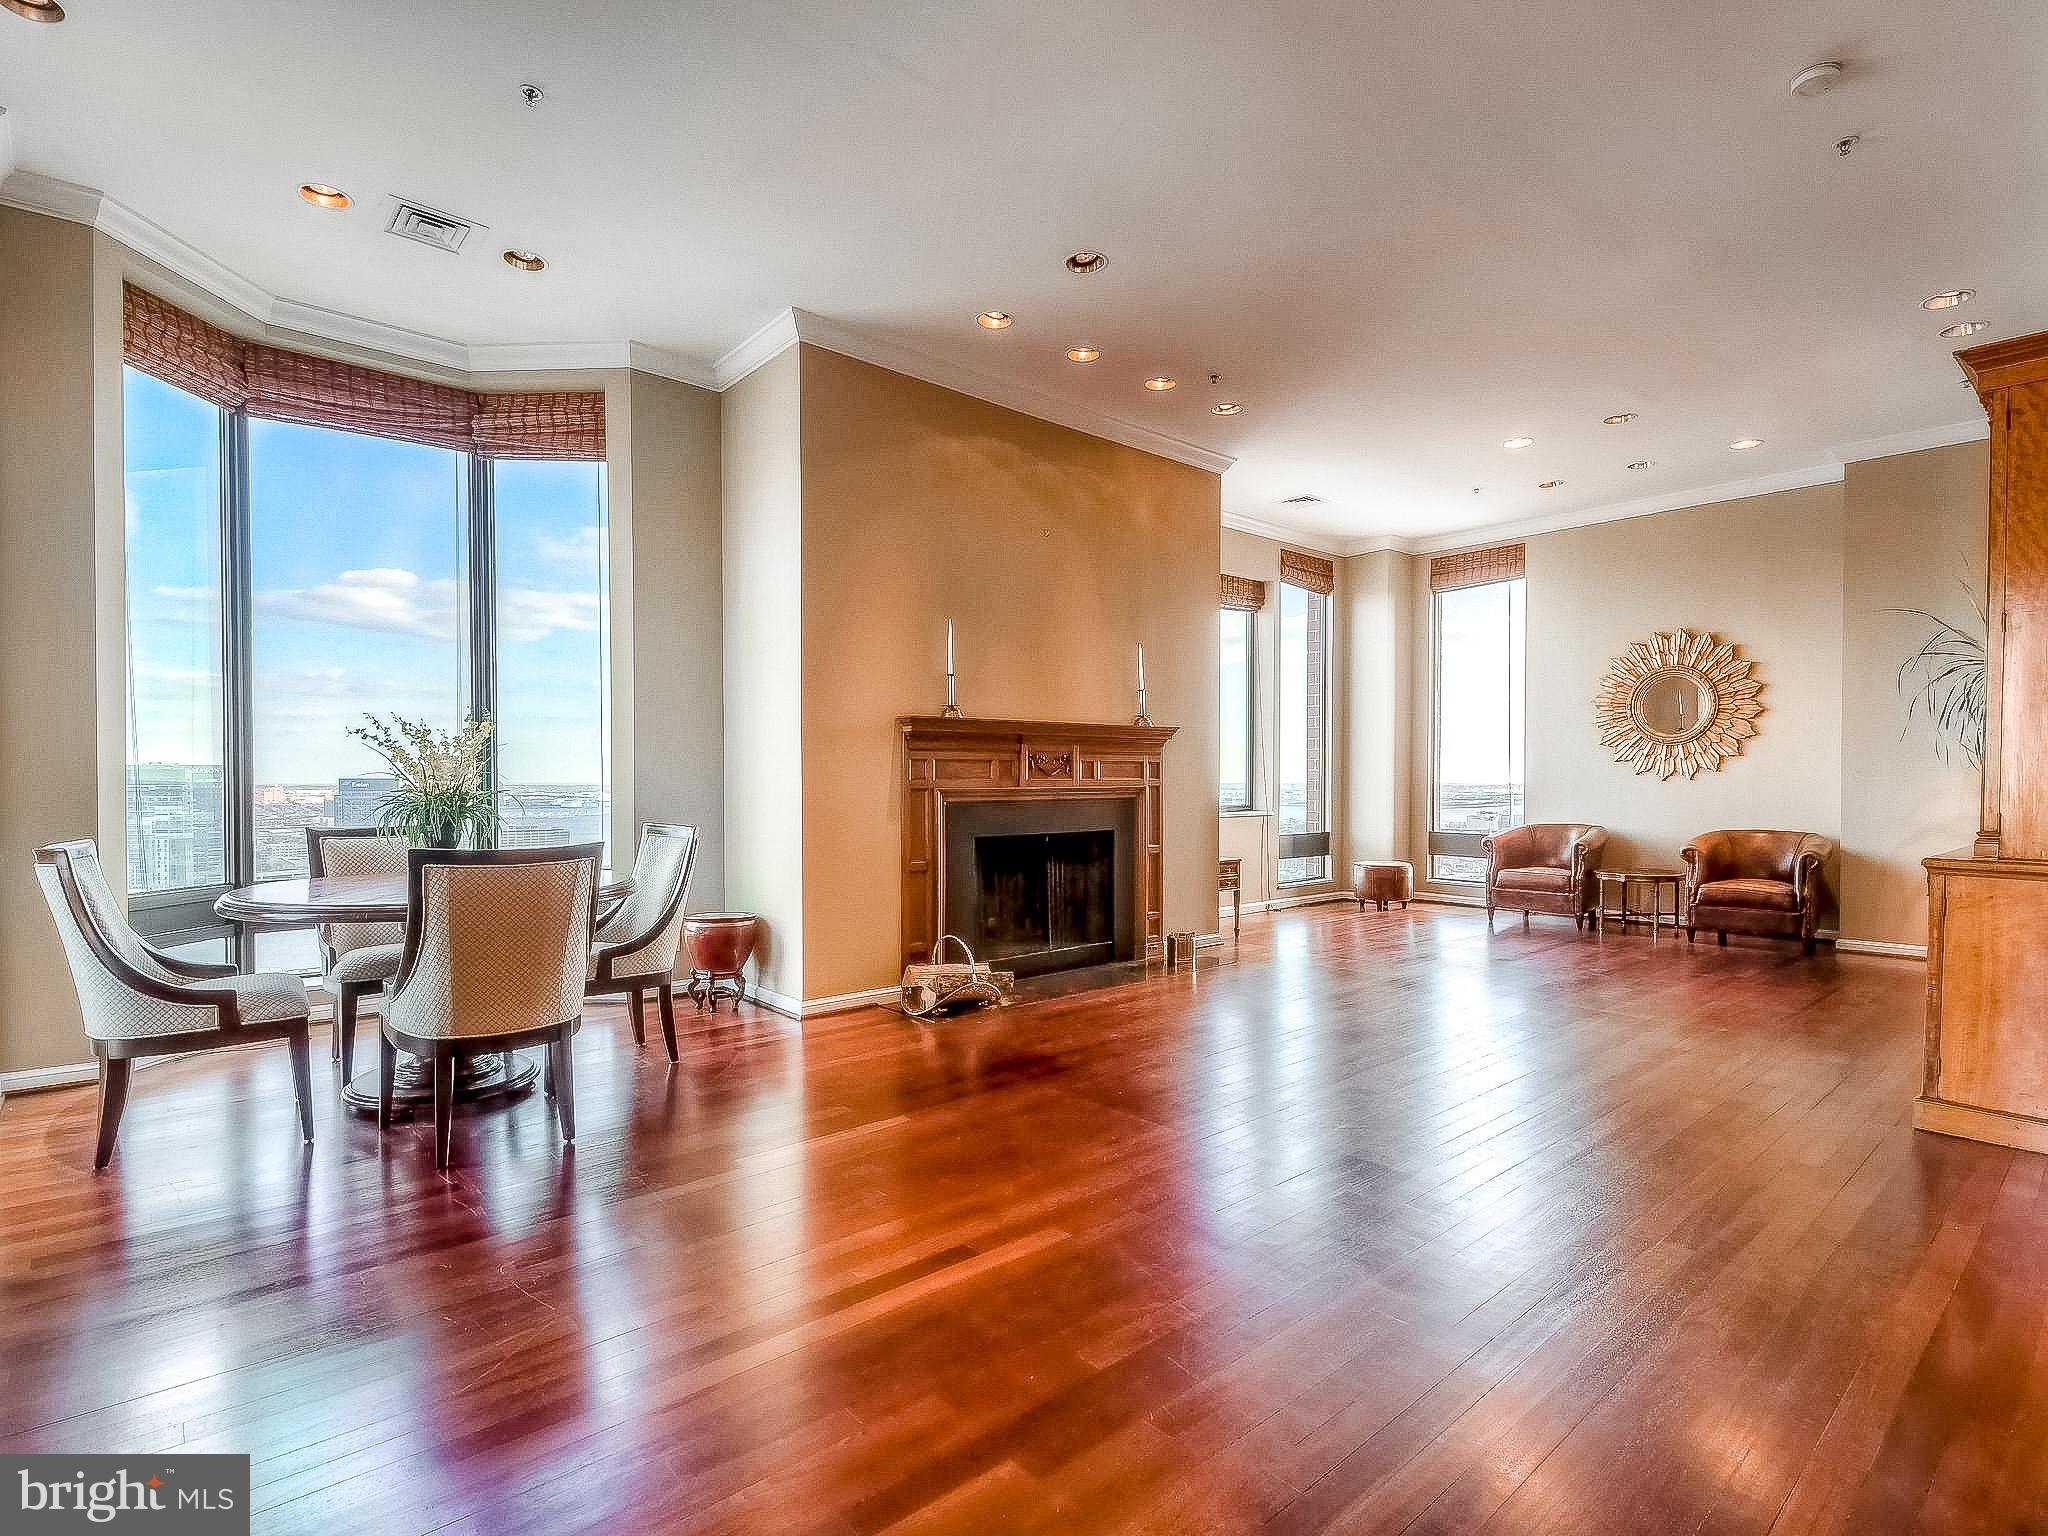 3D Virtual Tour now available!  Breathtaking 28th floor penthouse in The Towers at Harbor Court. Sweeping views from floor-to-ceiling windows of Baltimore's Inner Harbor, Federal Hill, stadiums, and the city skyline. This one of a kind condominium features rich hardwood flooring, marble, a private elevator lobby, oversized master suite with a spa bath, ample closet space and beautifully crafted built-ins. A large wood-burning fireplace and incredible views of the Inner Harbor make the large main living space a show stopper. Luxury amenities include 24/7 front desk staff, concierge and porters, secured parking and shared amenities with the attached Royal Sonesta Hotel that include a guest suite, pool membership and fitness center along with restaurants and lounge.